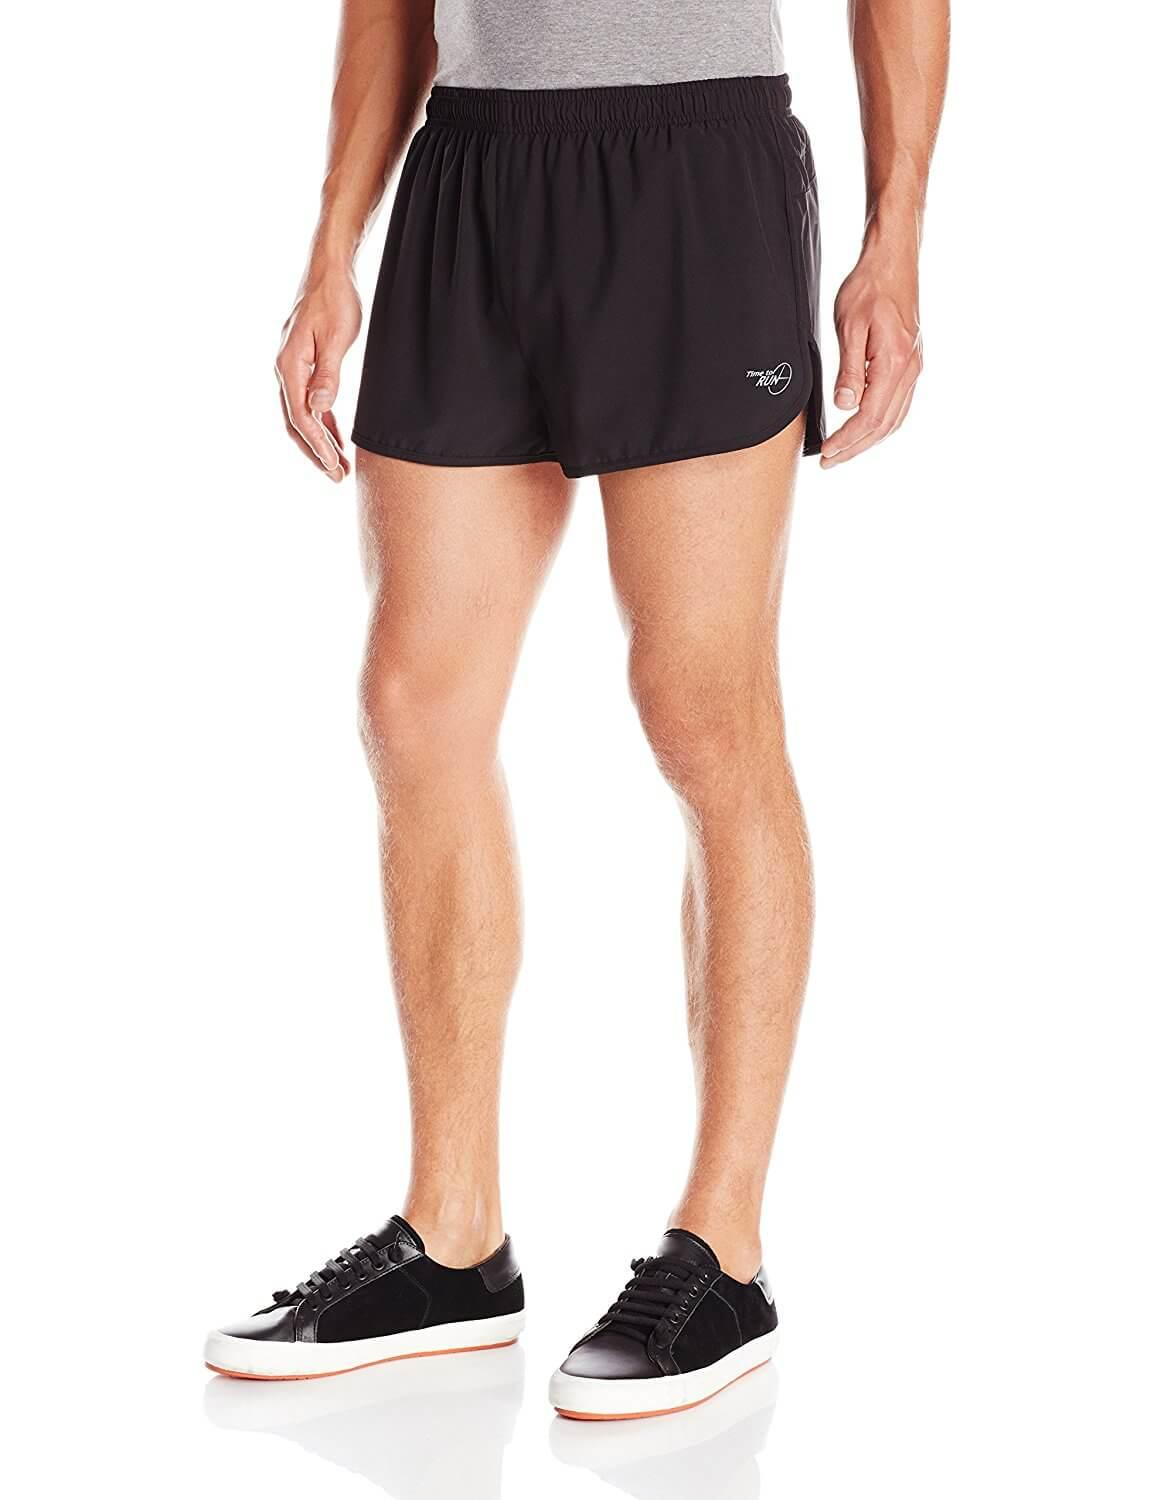 10 Best Running Shorts with Pockets Reviewed in 2017 | RunnerClick